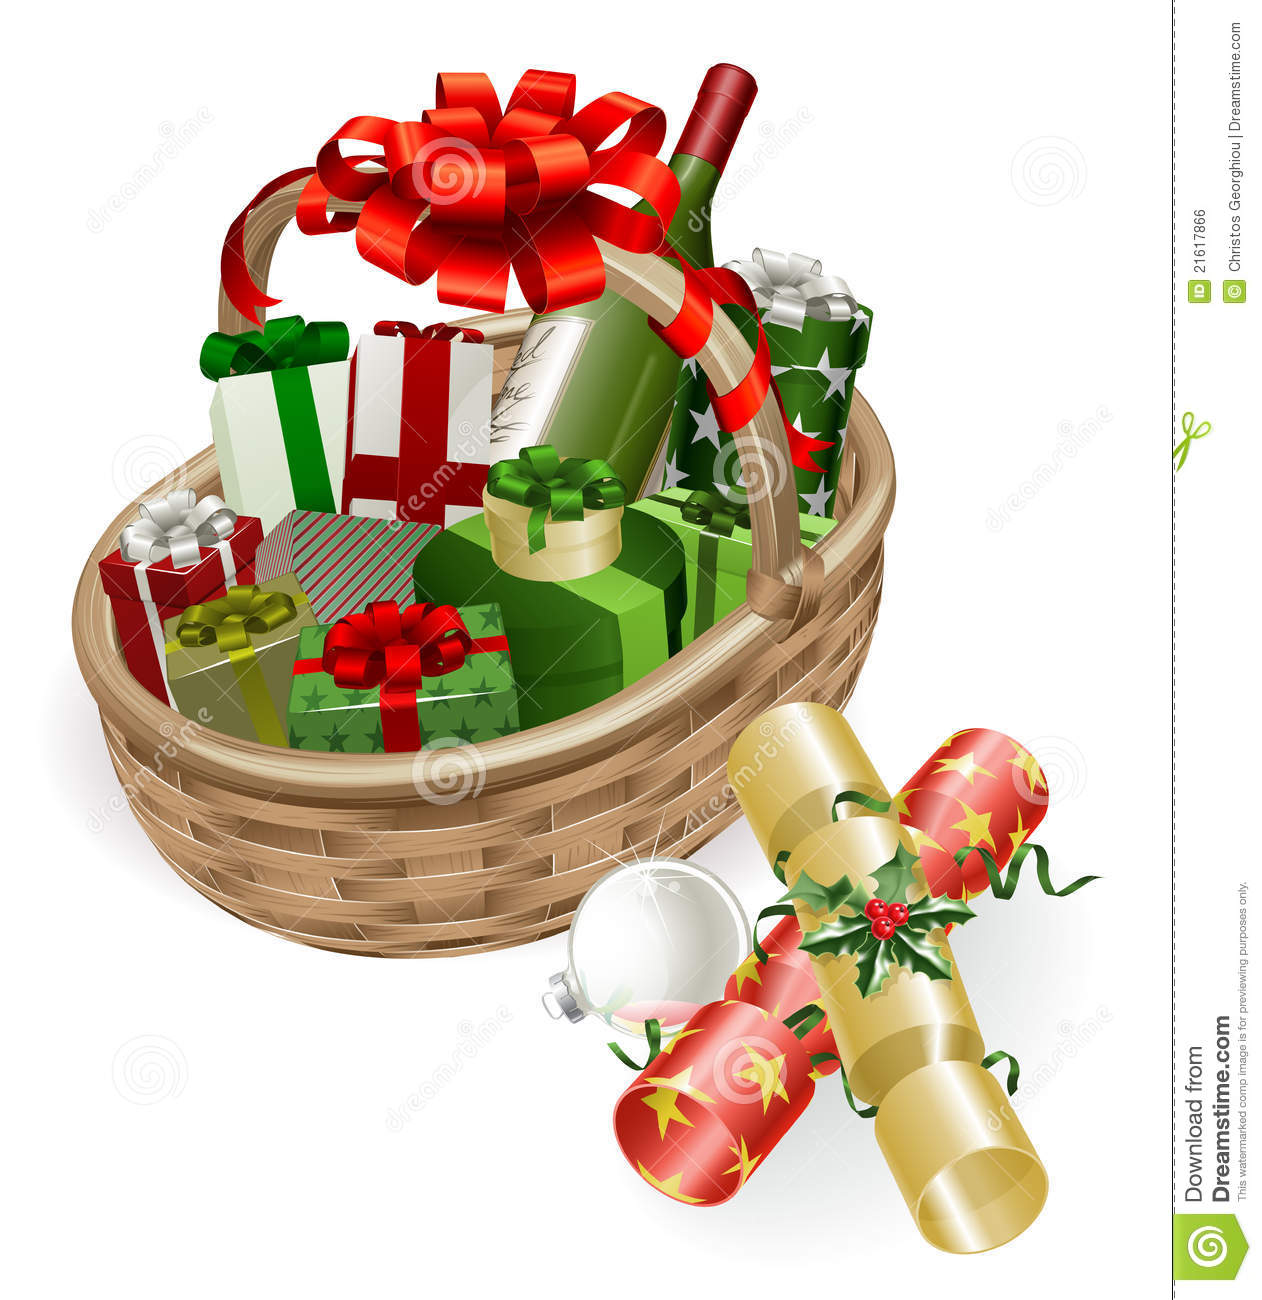 Clip Art Christmas Basket : Hamper cartoon clipart suggest